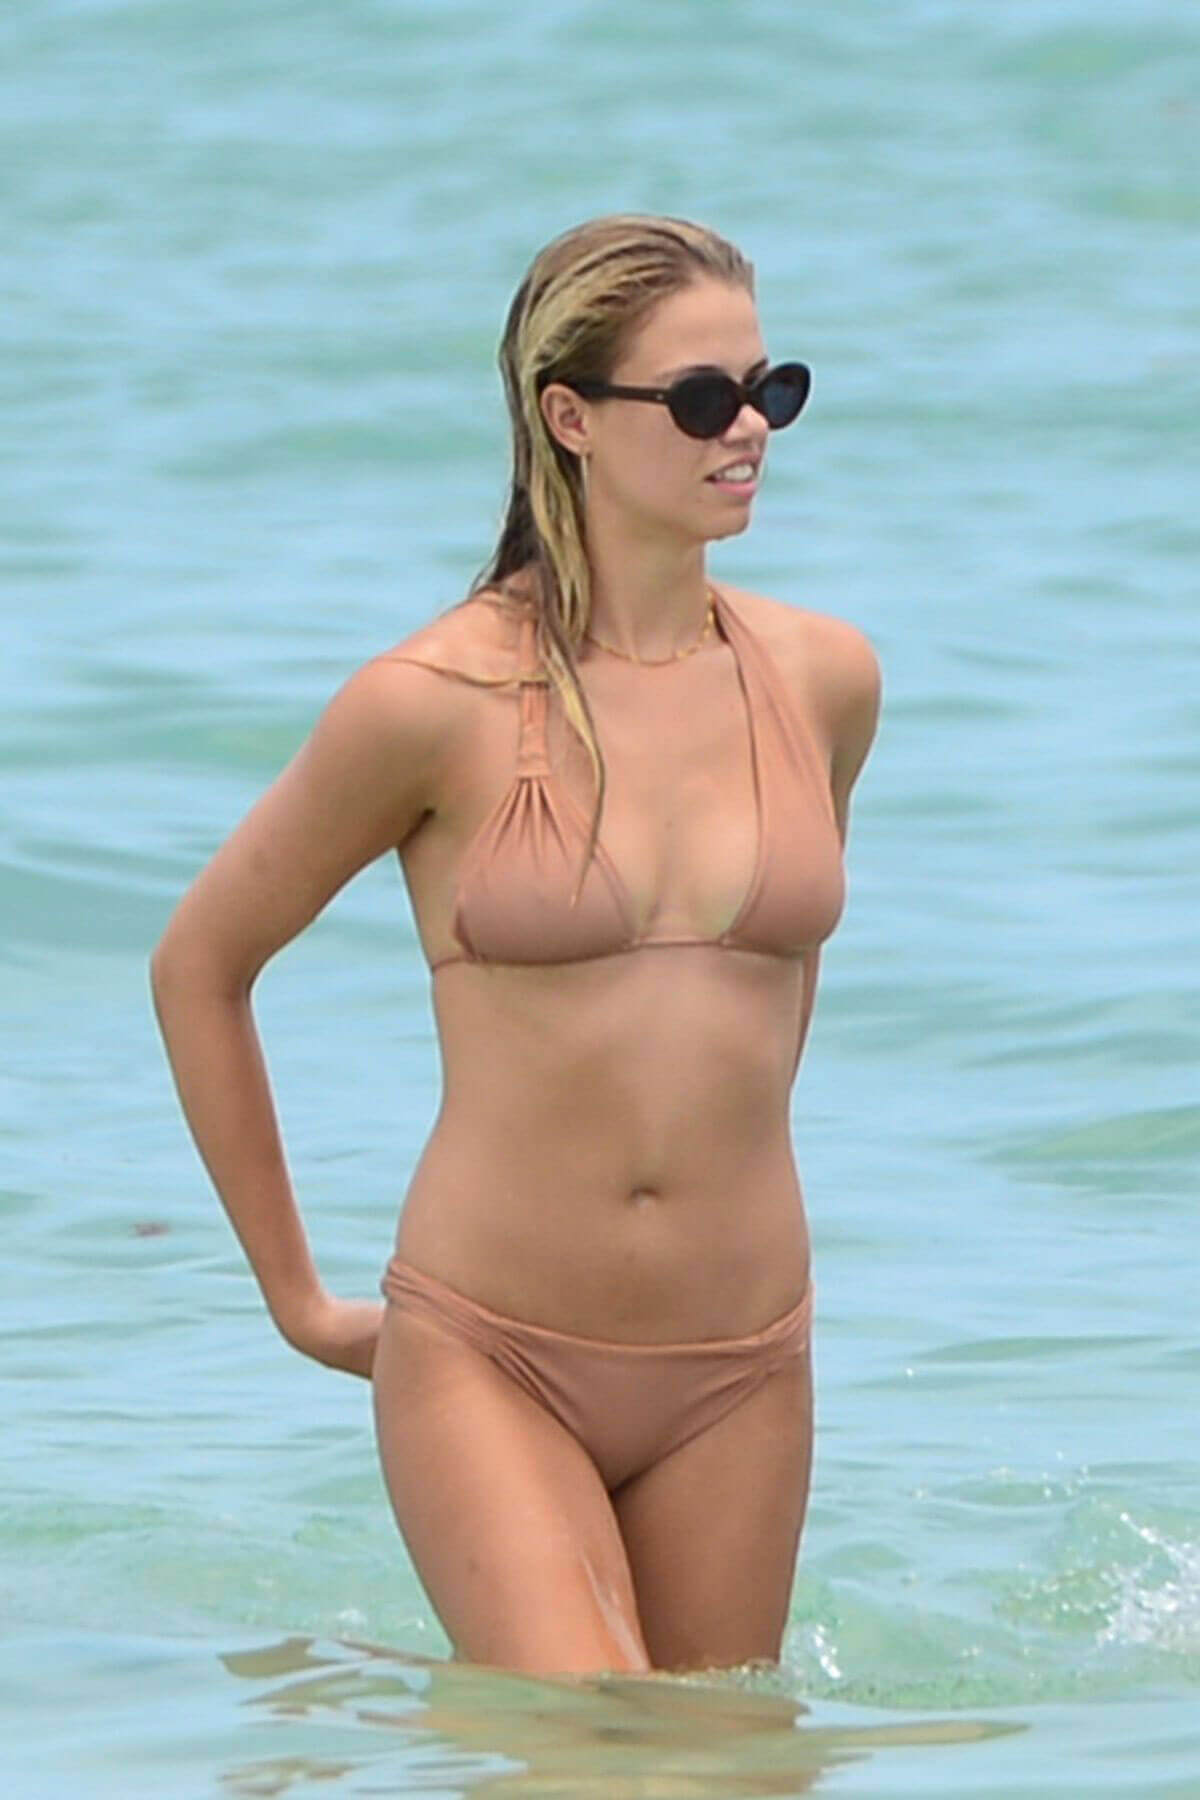 Hailey Clauson wearing skinny color Bikini on the Beach in Miami